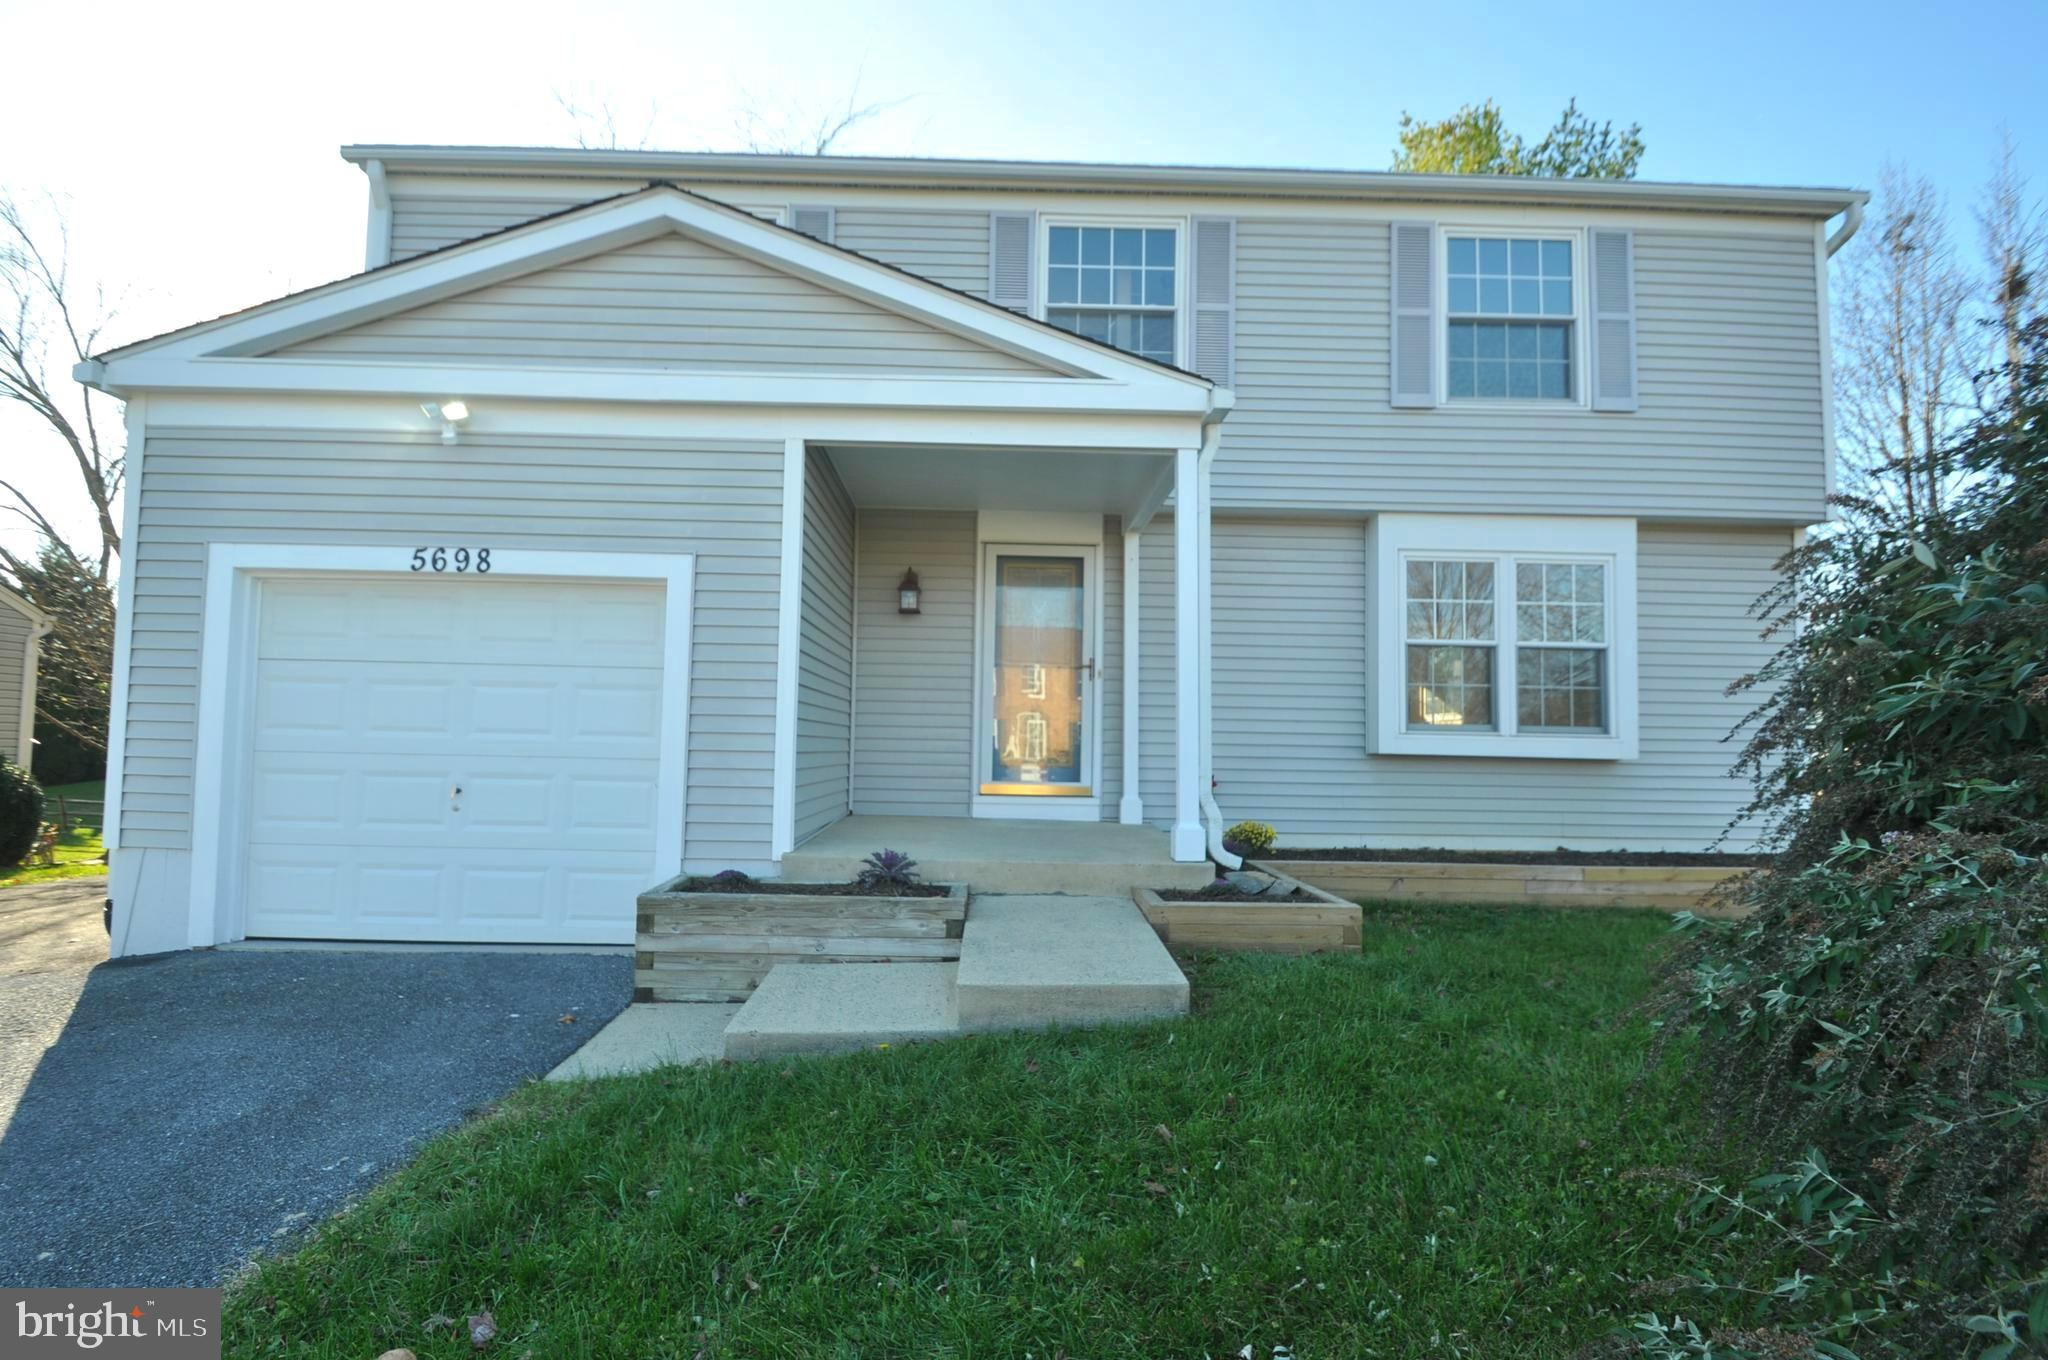 1ST OPEN OPEN HOUSE SAT 12/5 & SUN 12/6 1:30-3:30.  BRIGHT 3 LEVEL GARAGE HOME  (4 windows added to